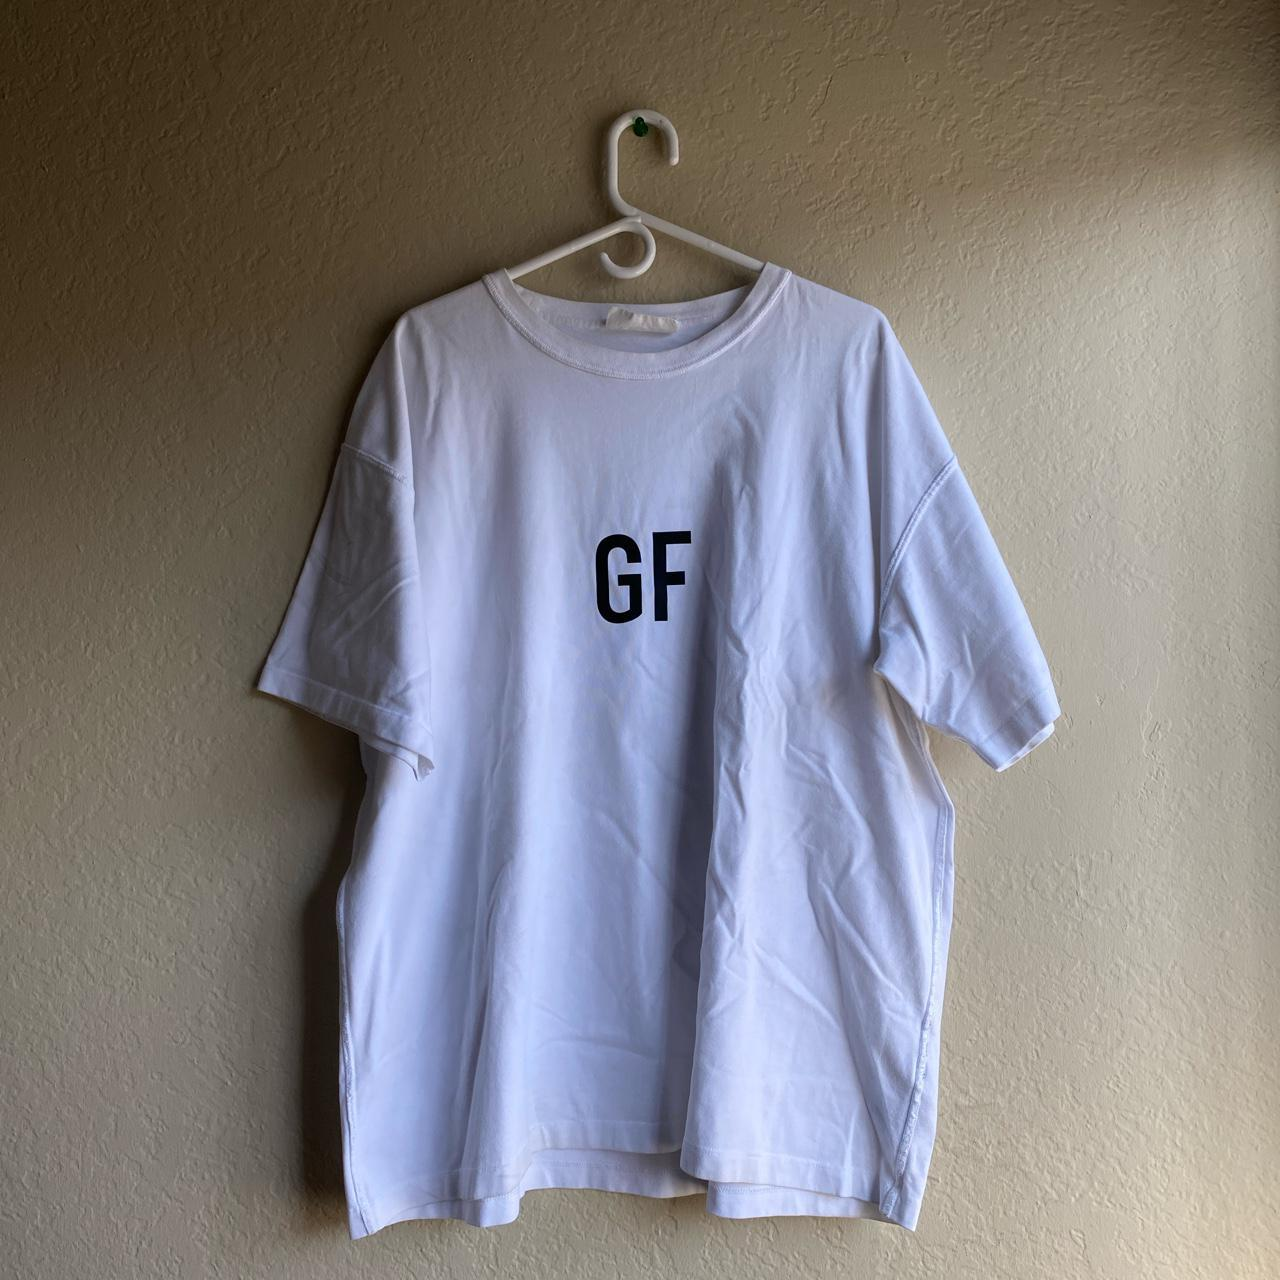 Product Image 1 - Fear of God George Floyd white